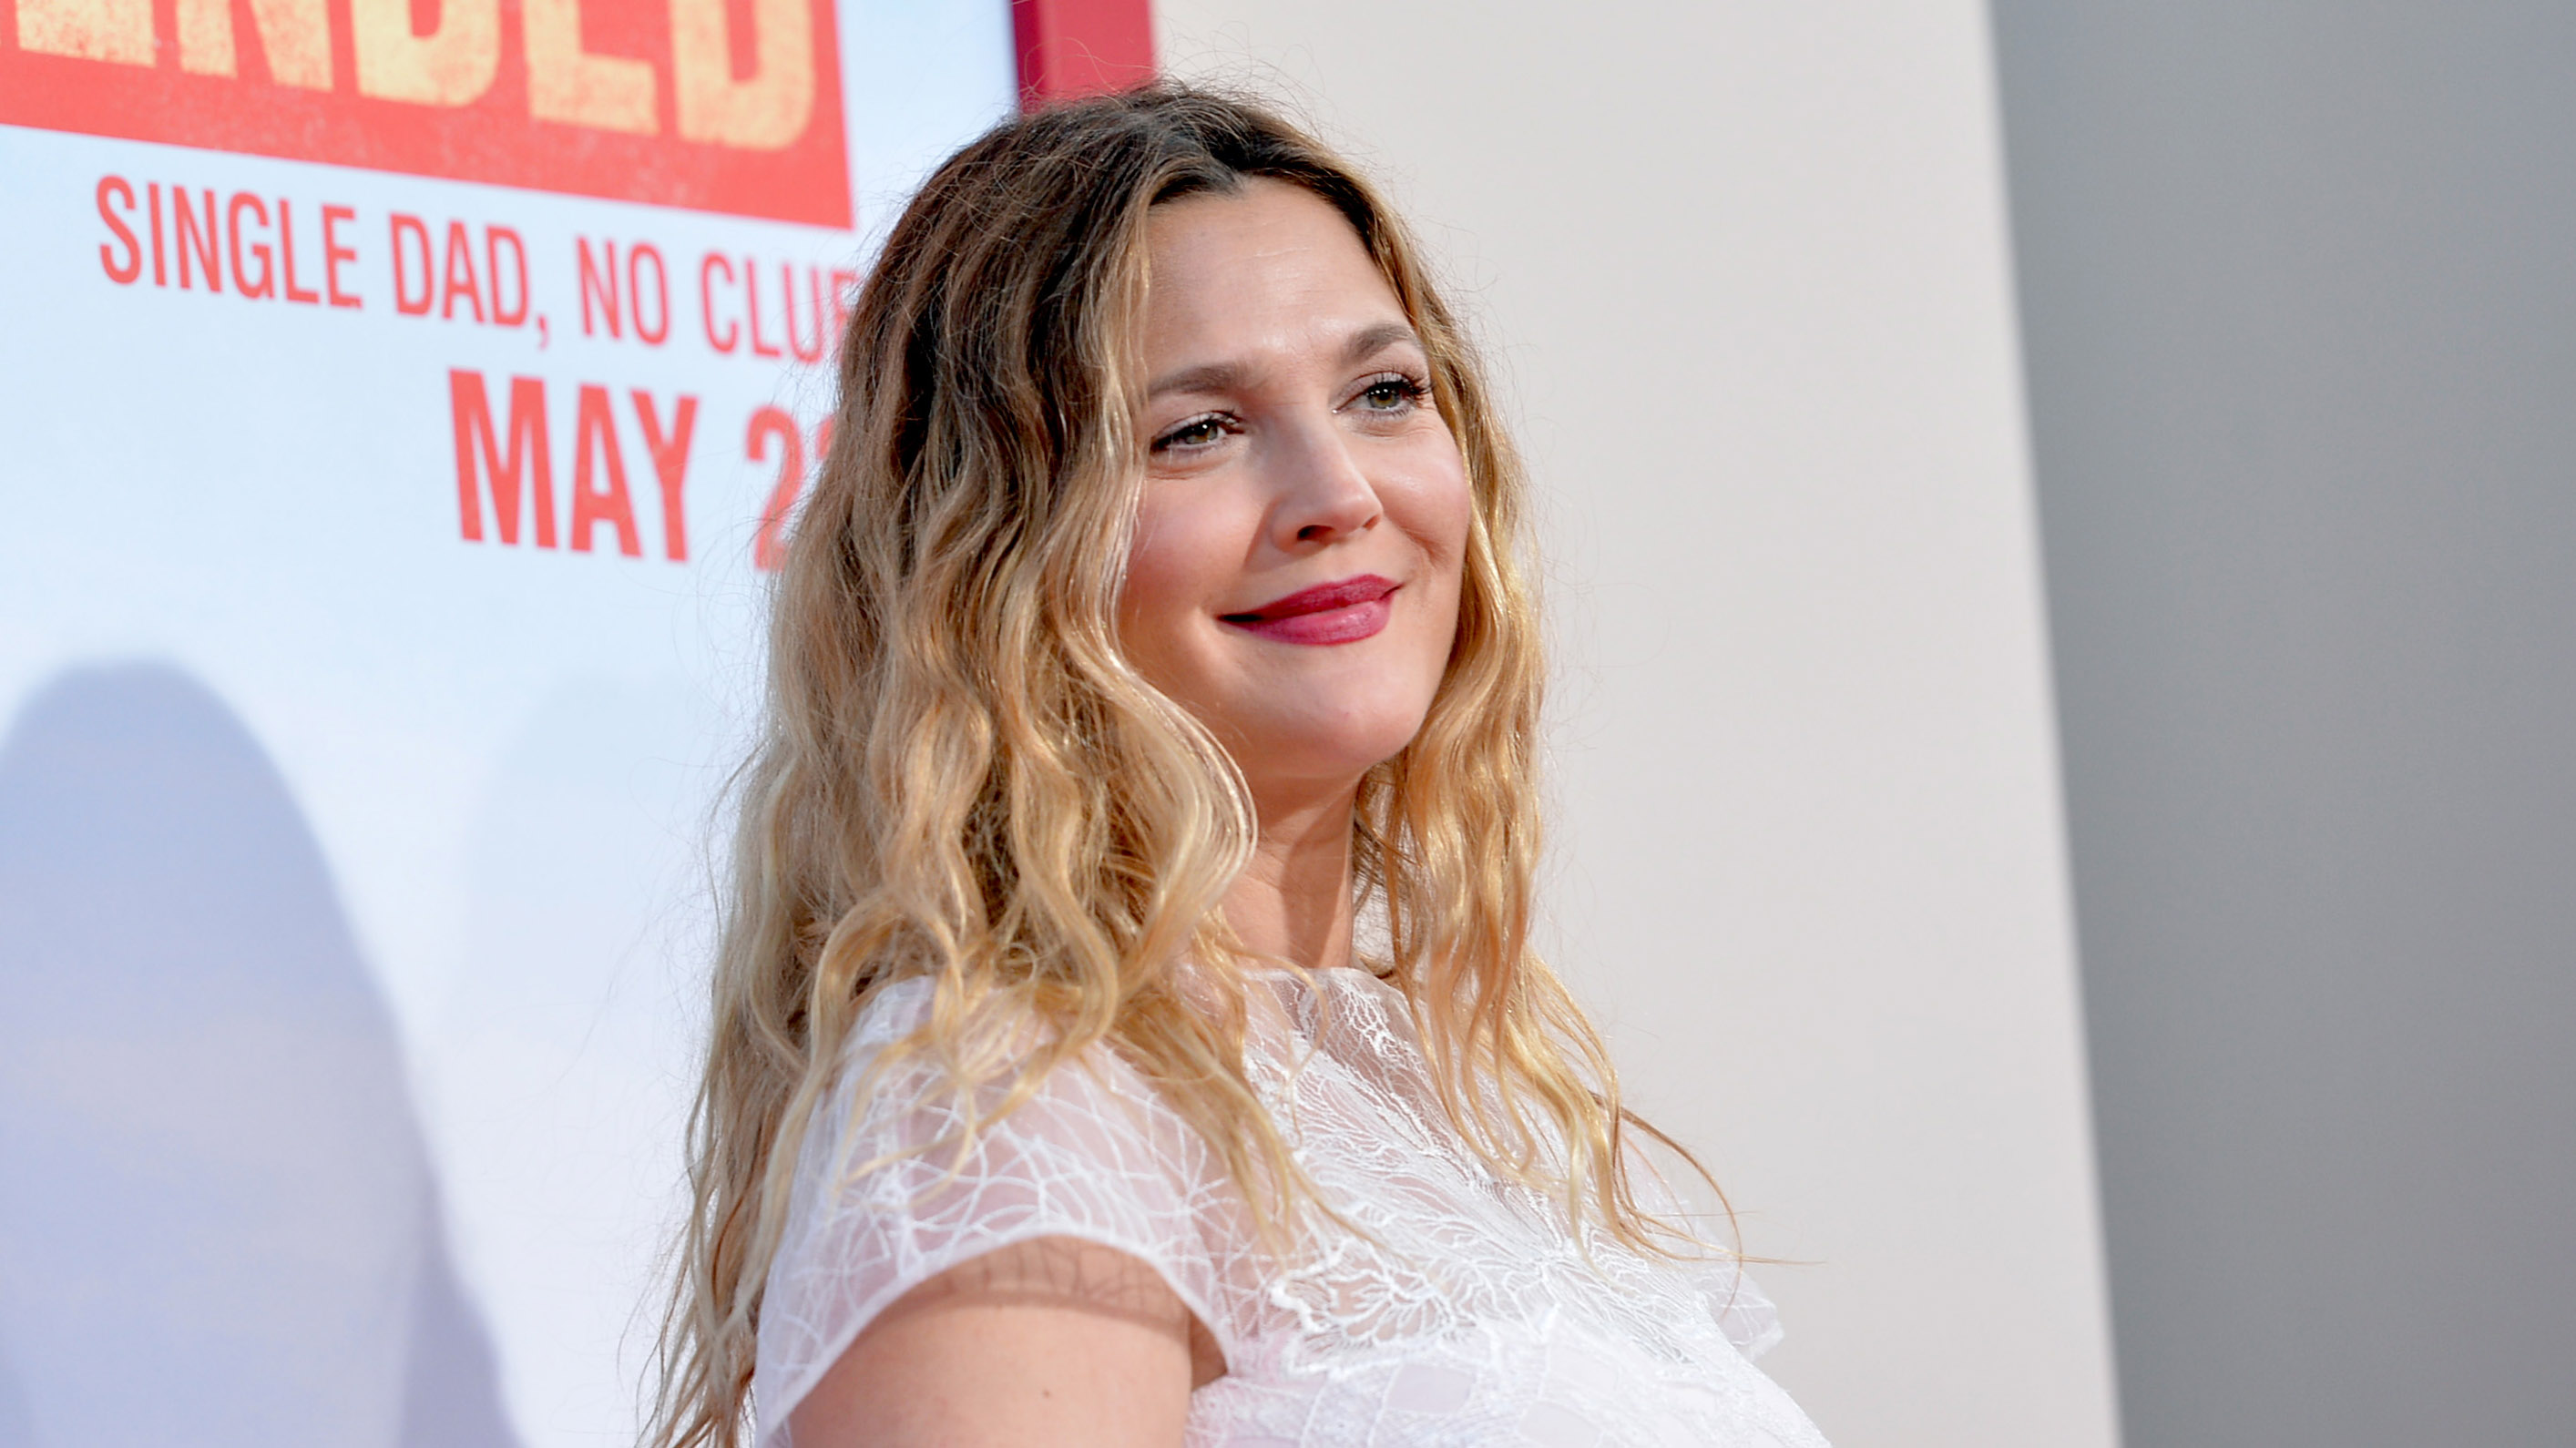 Westlake Legal Group 79cef007-Drew-Barrymore-Latina Actress Drew Barrymore to host daytime talk show Nate Day fox-news/entertainment/tv fox-news/entertainment/celebrity-news fox-news/entertainment fox news fnc/entertainment fnc e7f32bc3-08dd-5194-bef0-e599b3b2c2a1 article